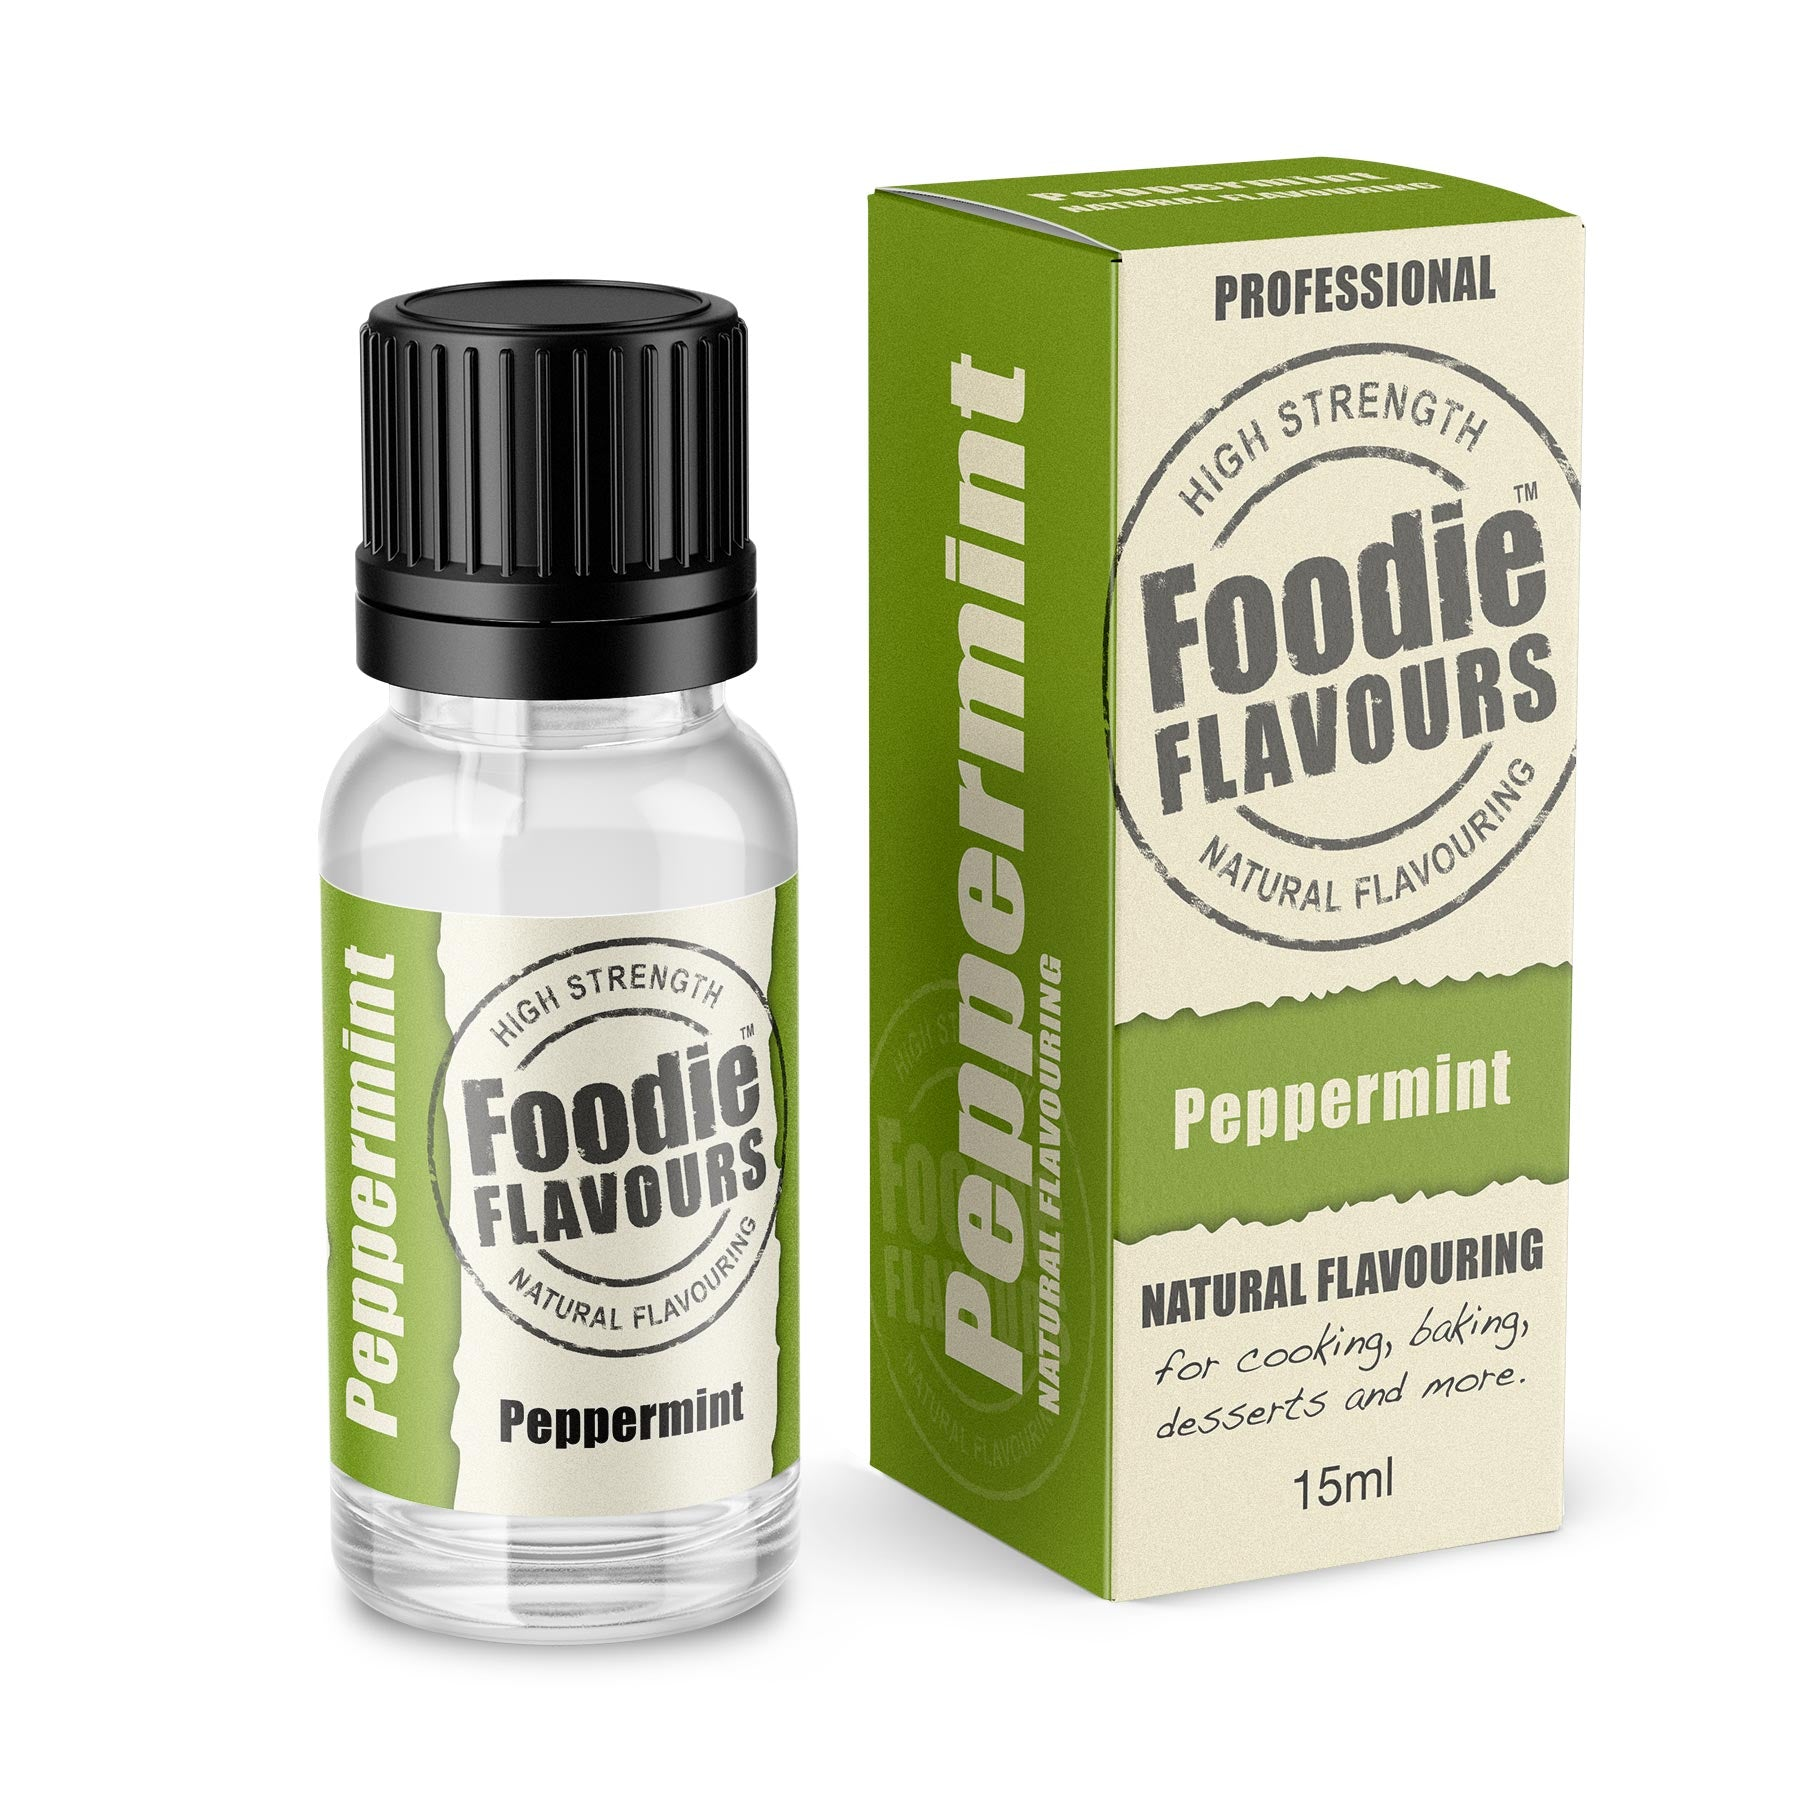 Peppermint Natural Flavouring 15ml